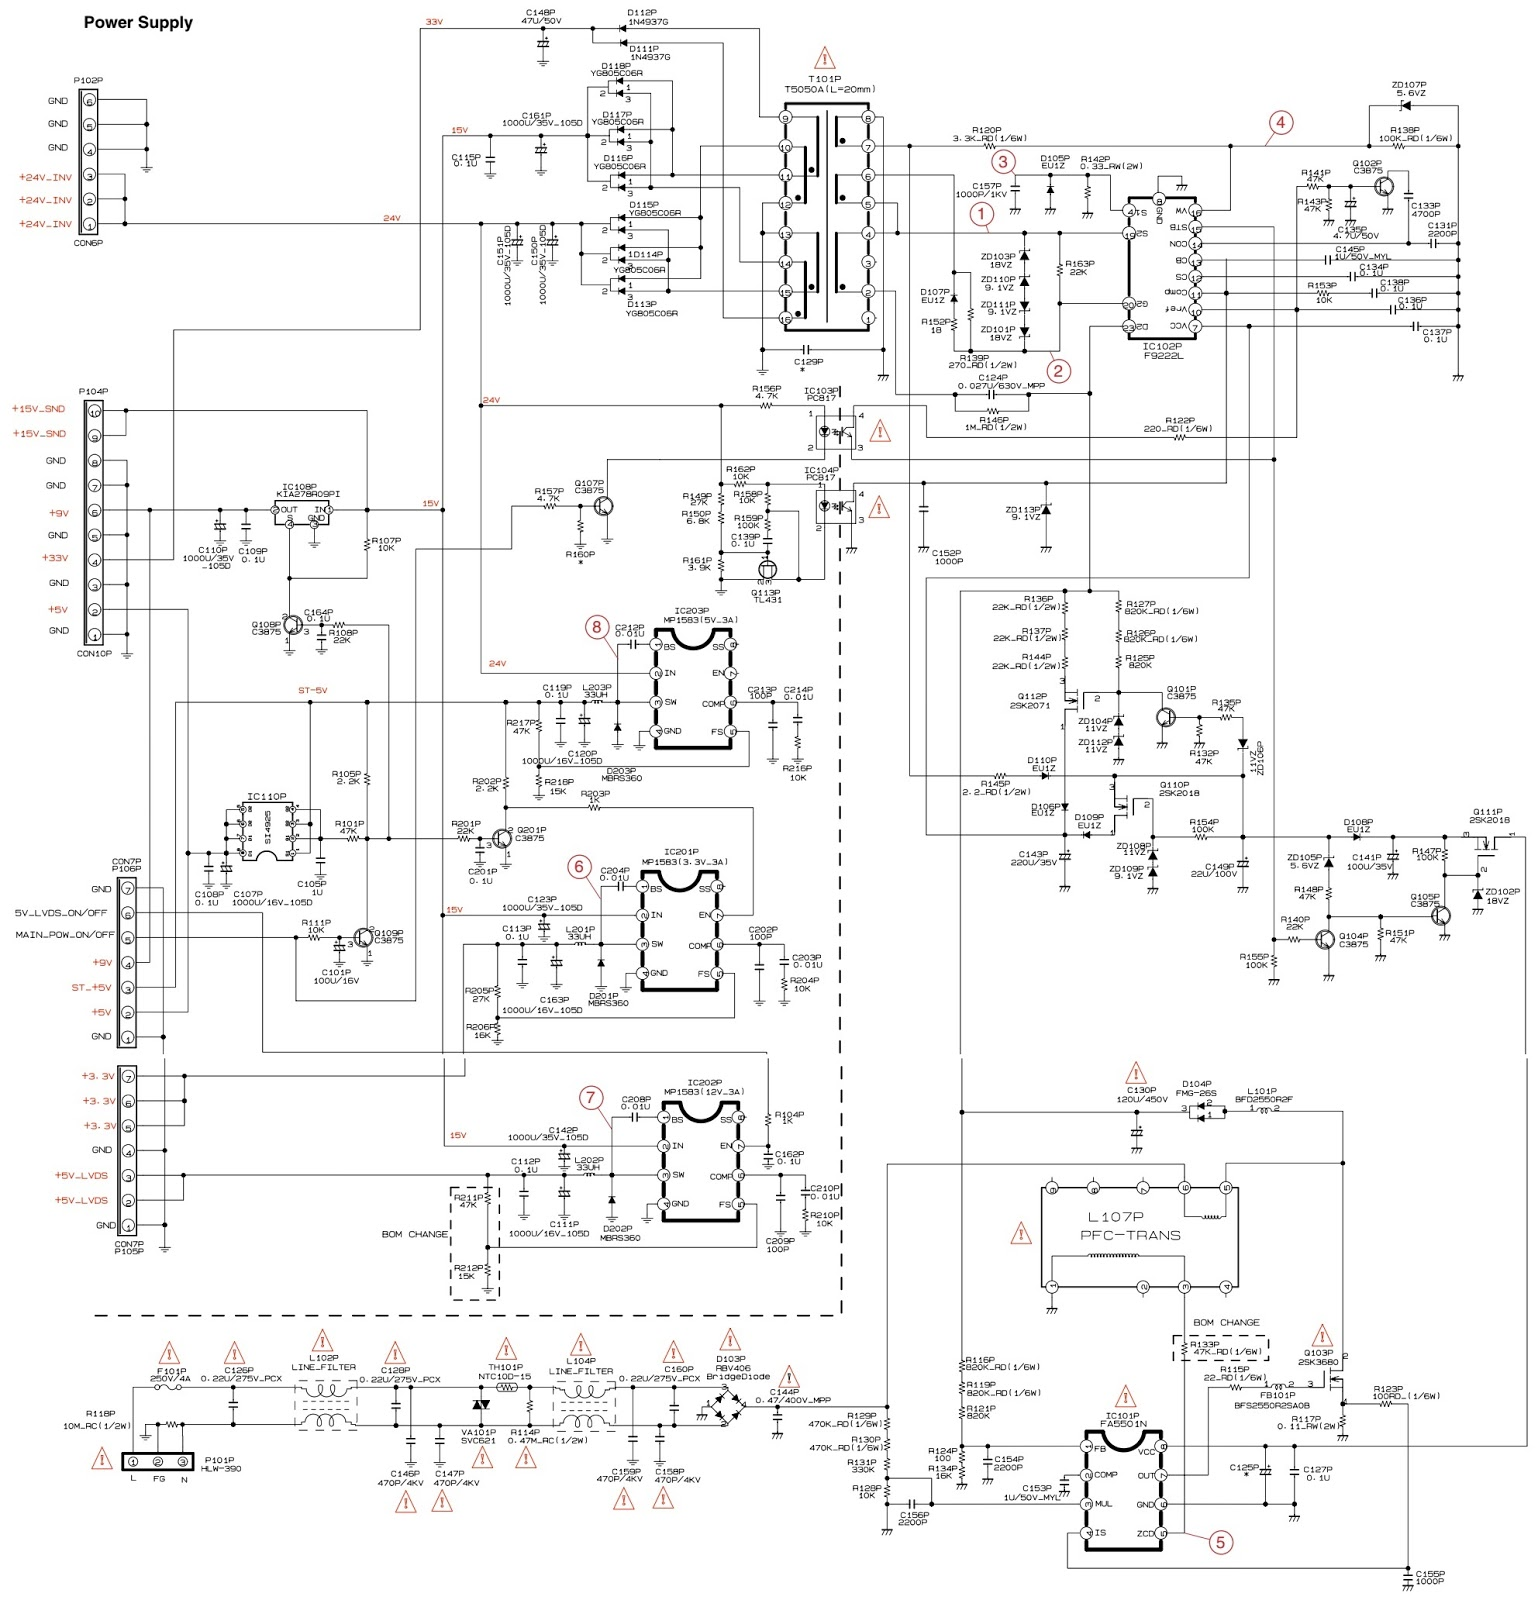 Cute smps inverter schematic photos wiring diagram ideas